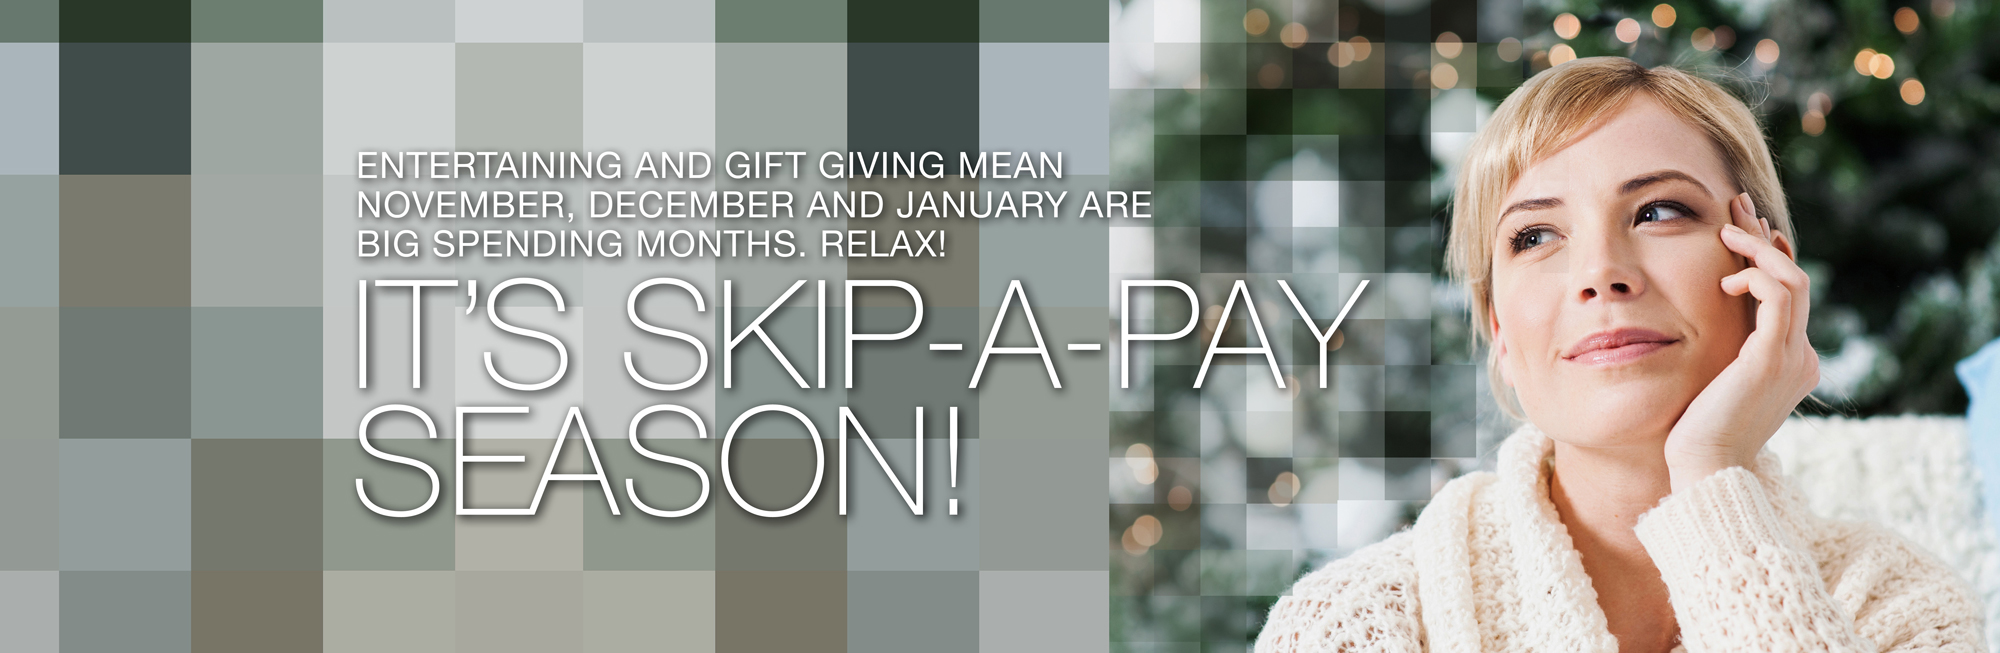 Entertaining and gift giving mean November through January are big spending months. Relax! It's Skip-a-pay season! Click to learn more.